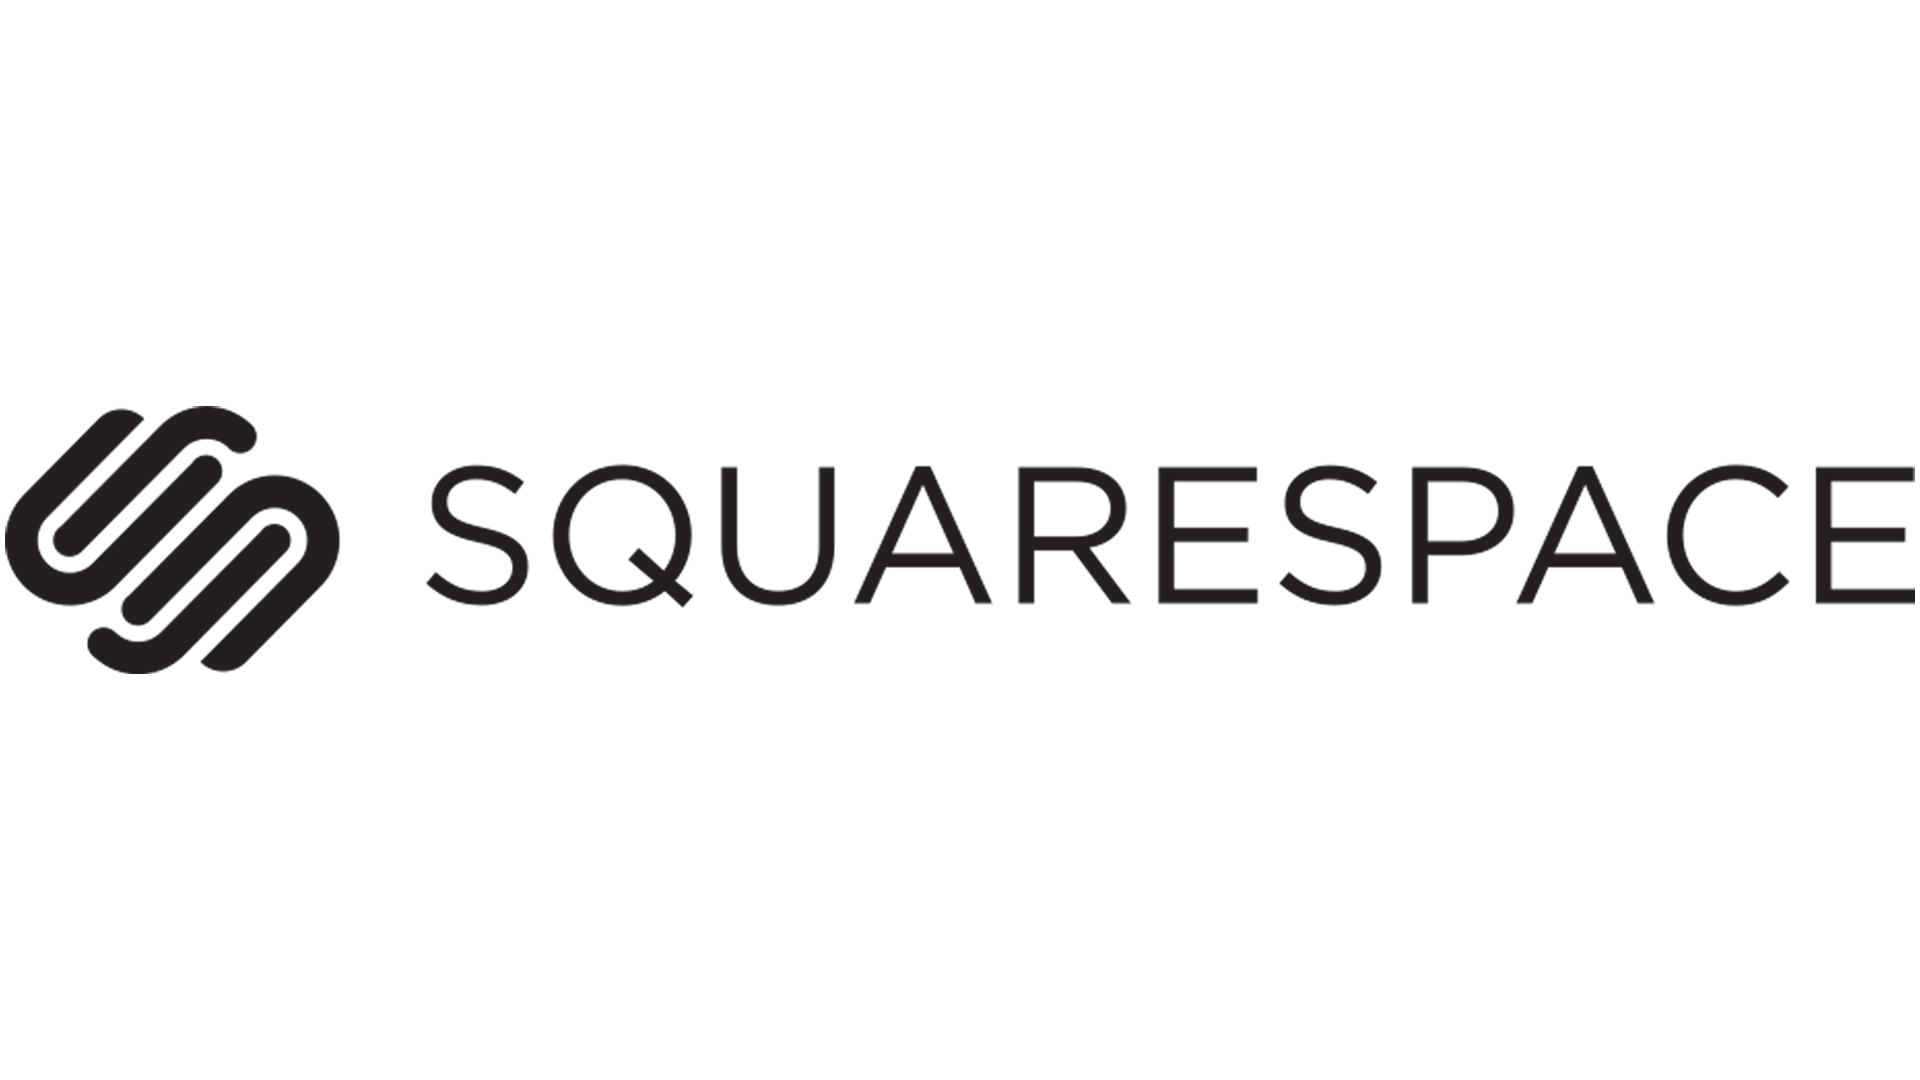 Squarespace Website Final.png